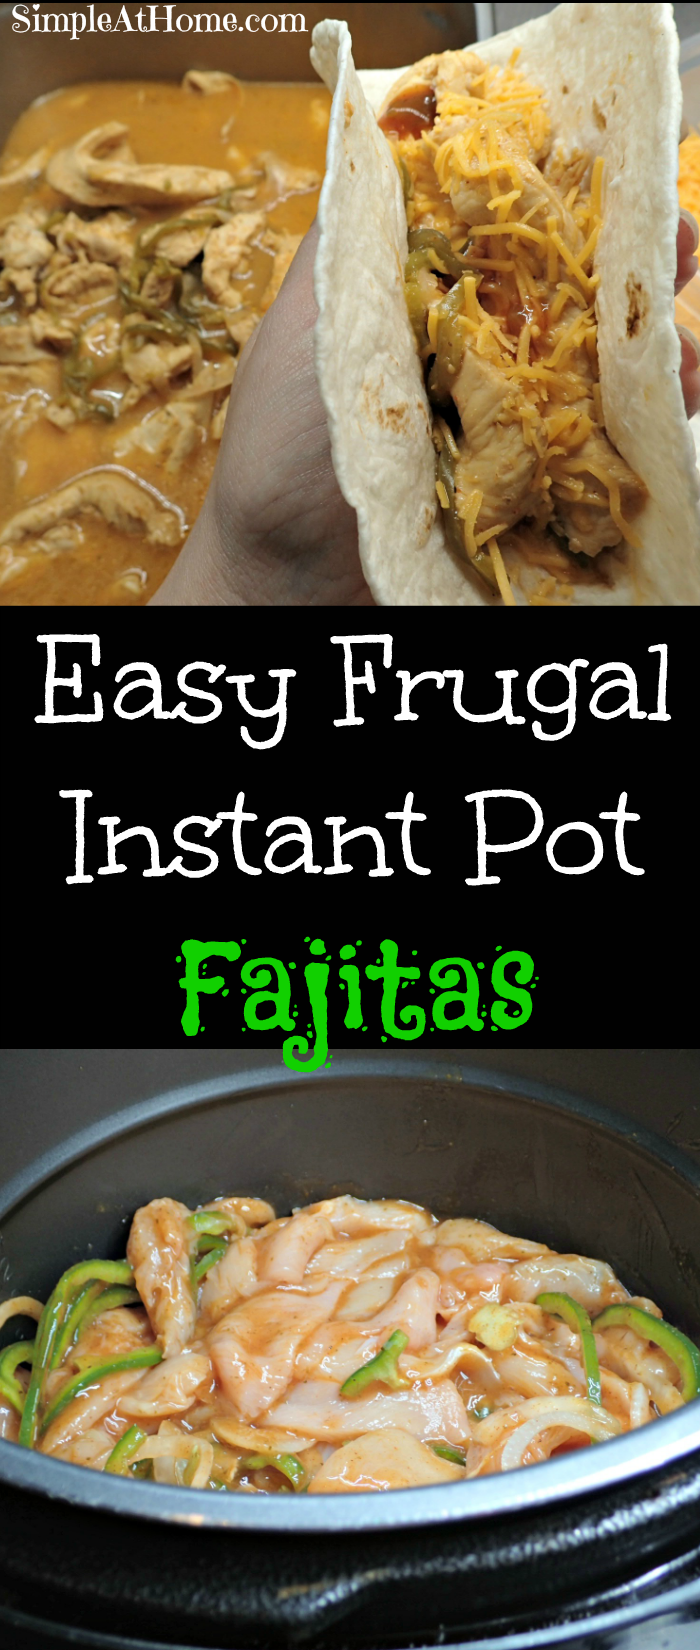 Simple, easy, and frugal Instant Pot Chicken Fajitas | Instant Pot | Chicken Dinners |